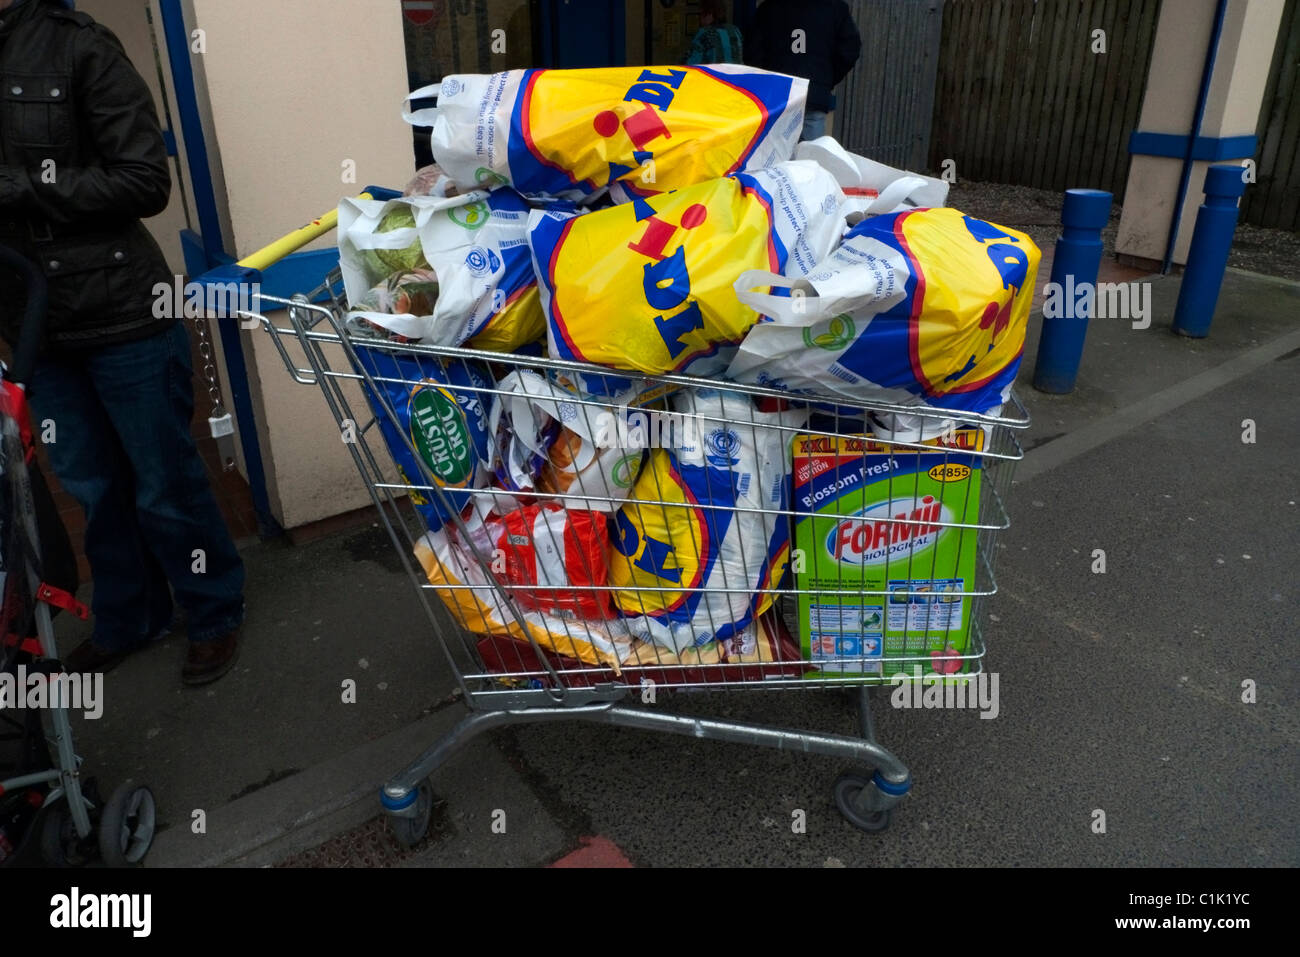 Plastic Bags Full With Groceries Stock Photos Plastic Bags Full